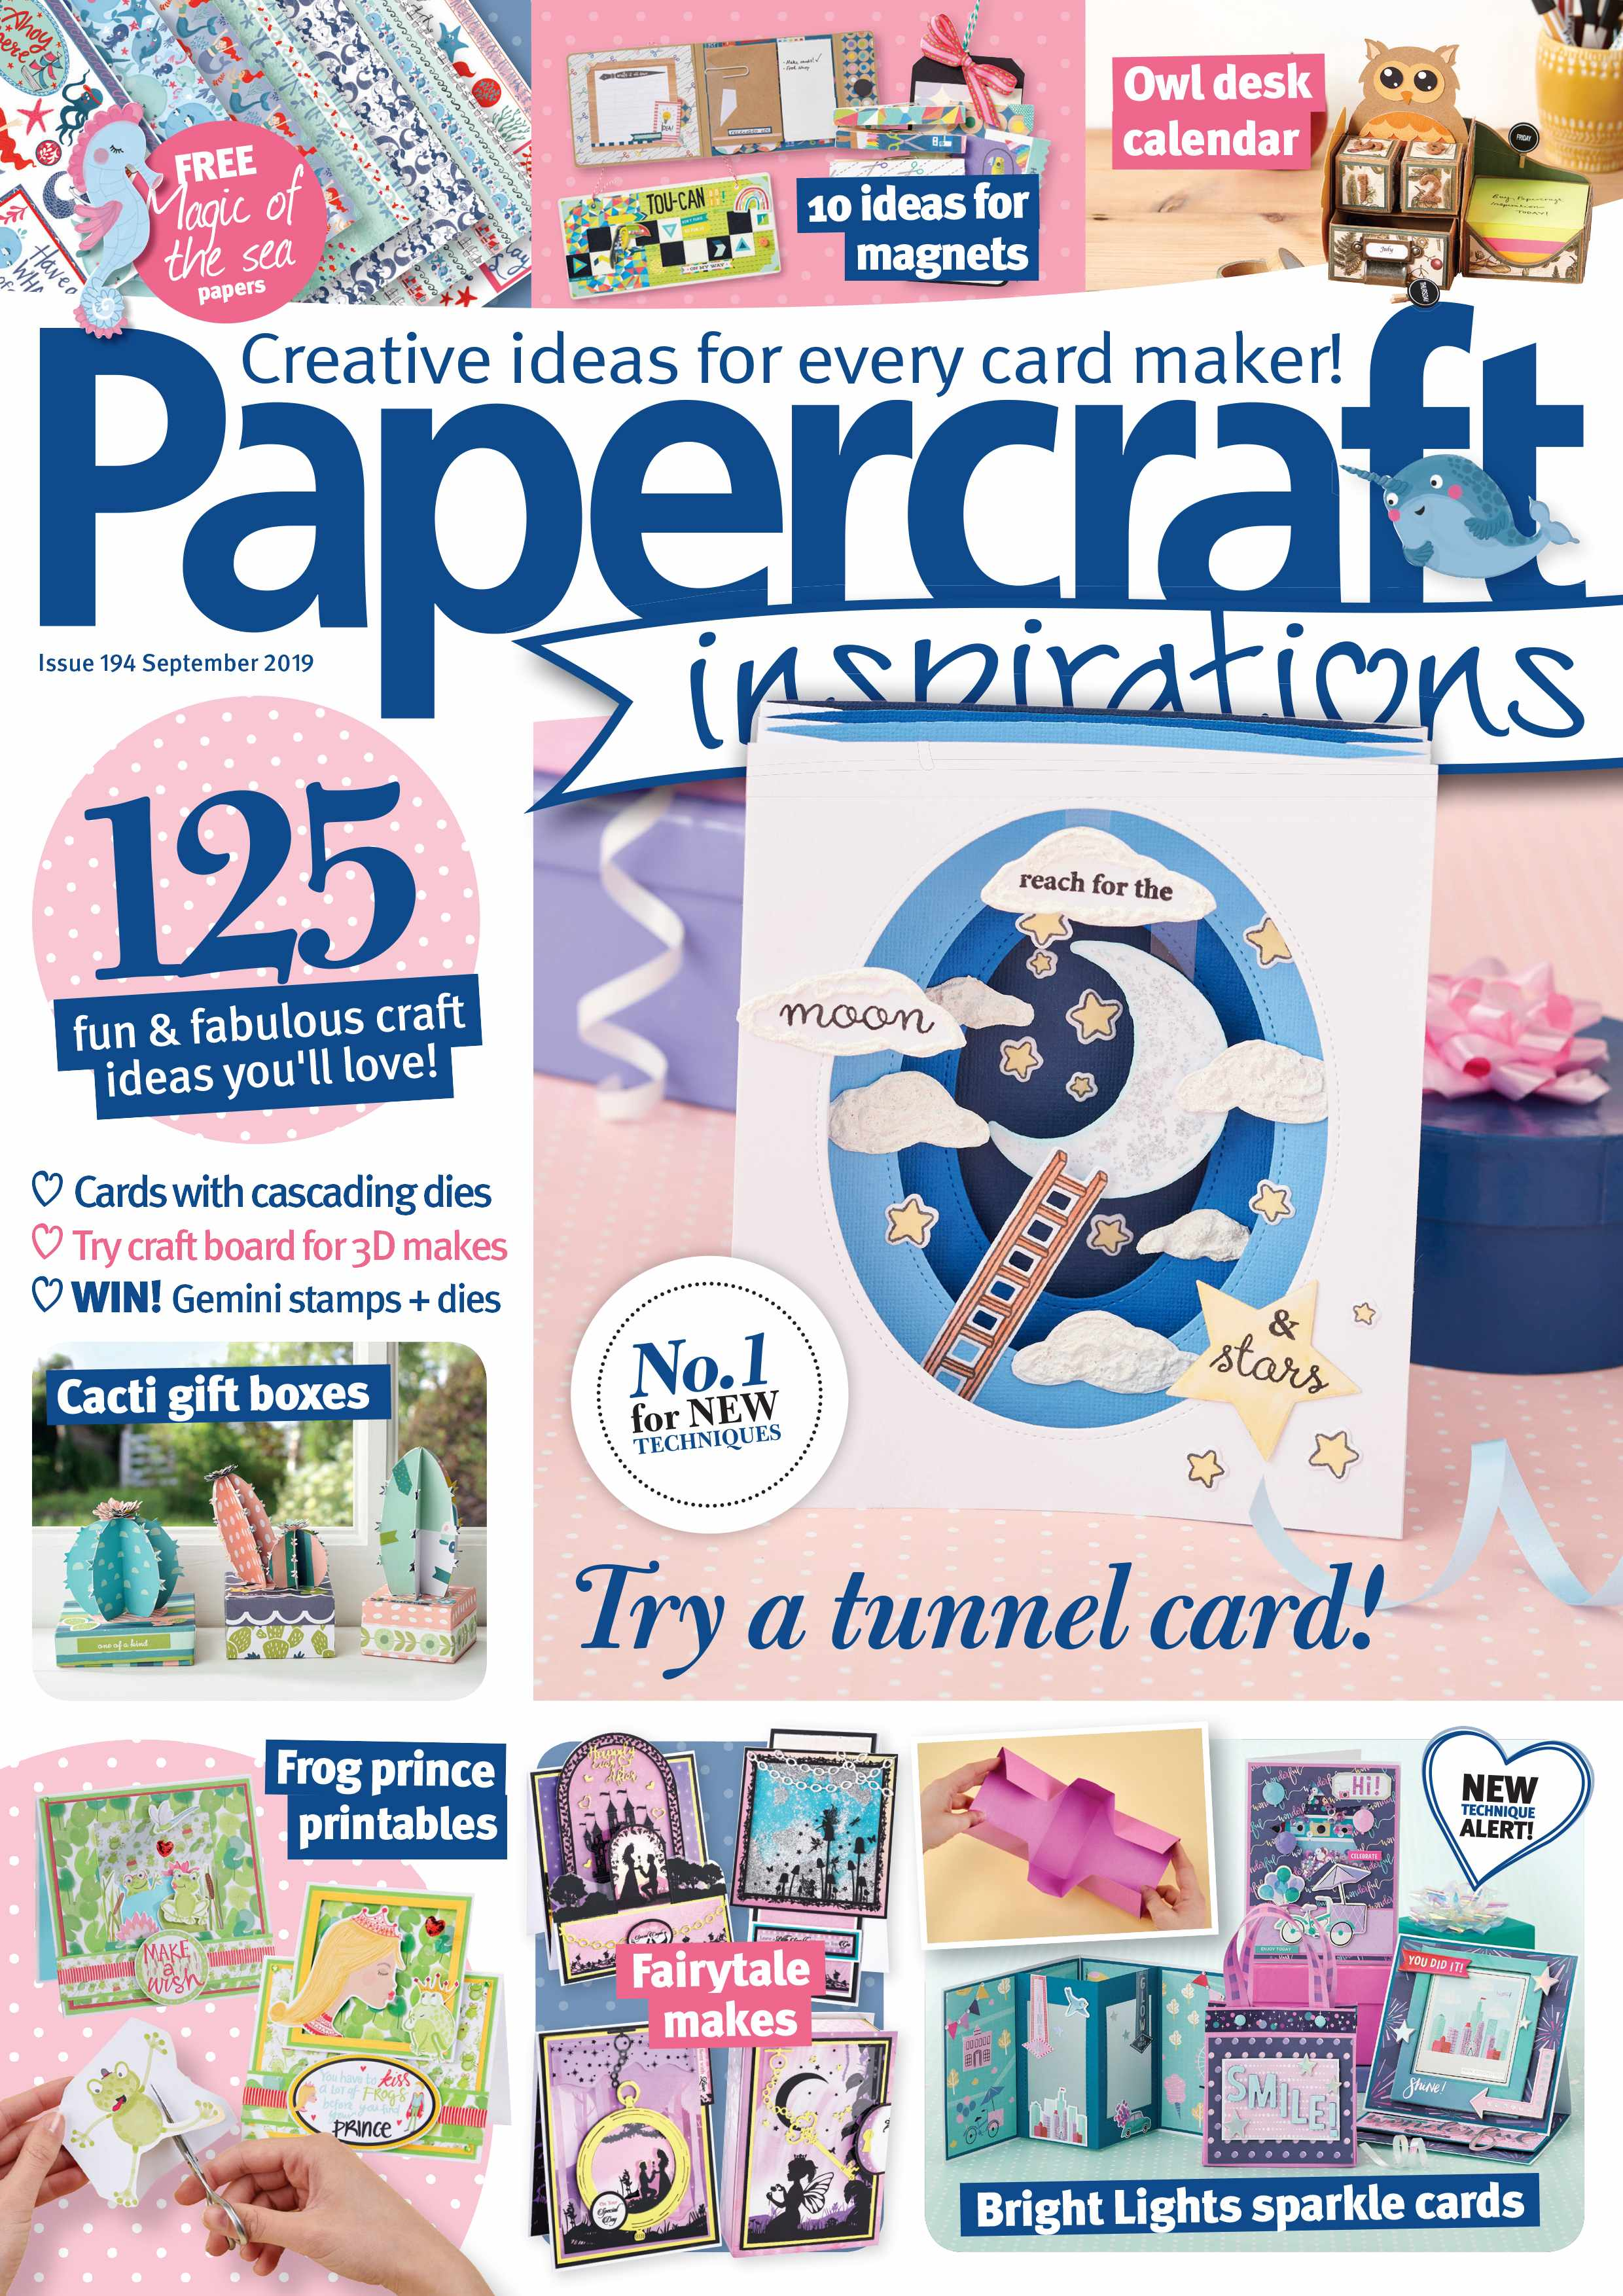 Papercraft inspirations magazine issue 194